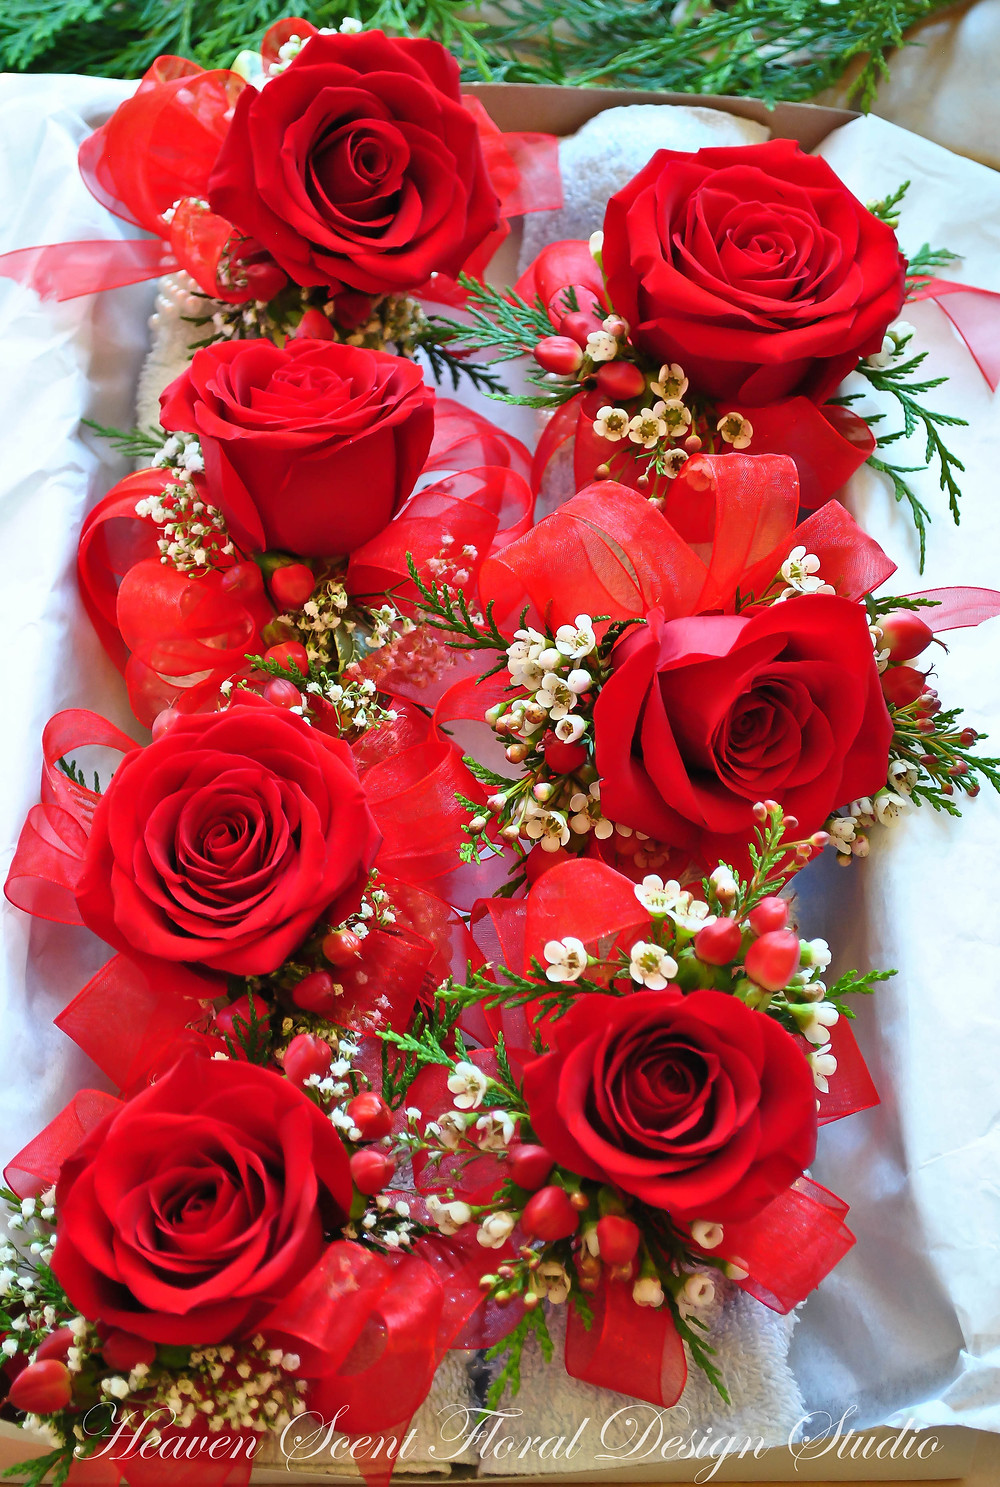 Red roses corsage | NJ Wedding Florist | Heaven Scent Floral Design